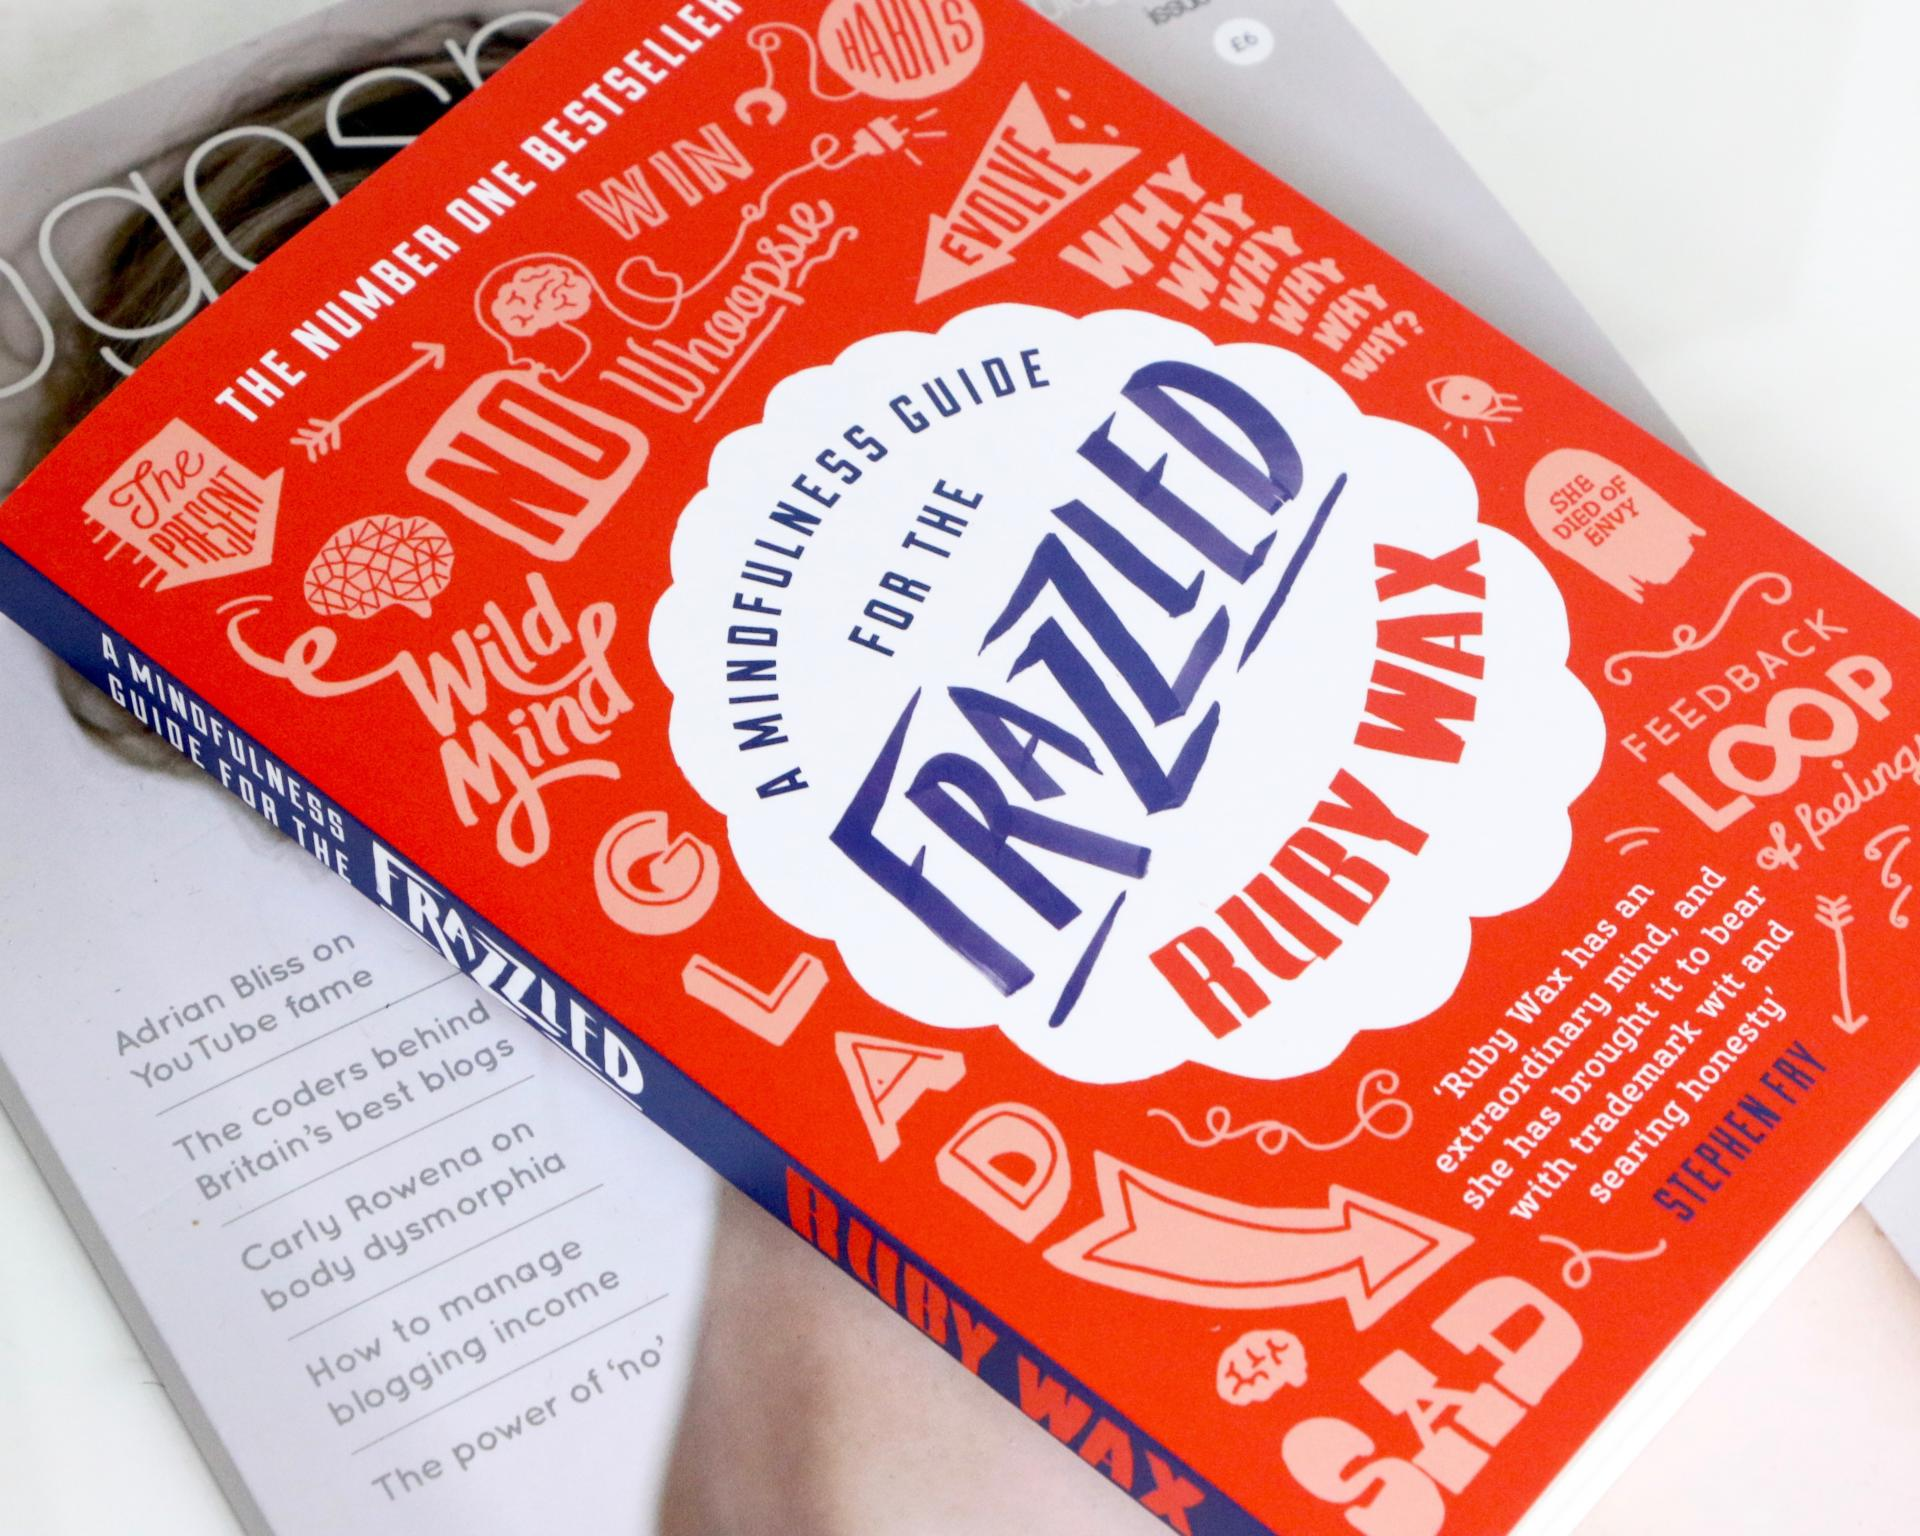 frazzled book ruby wax